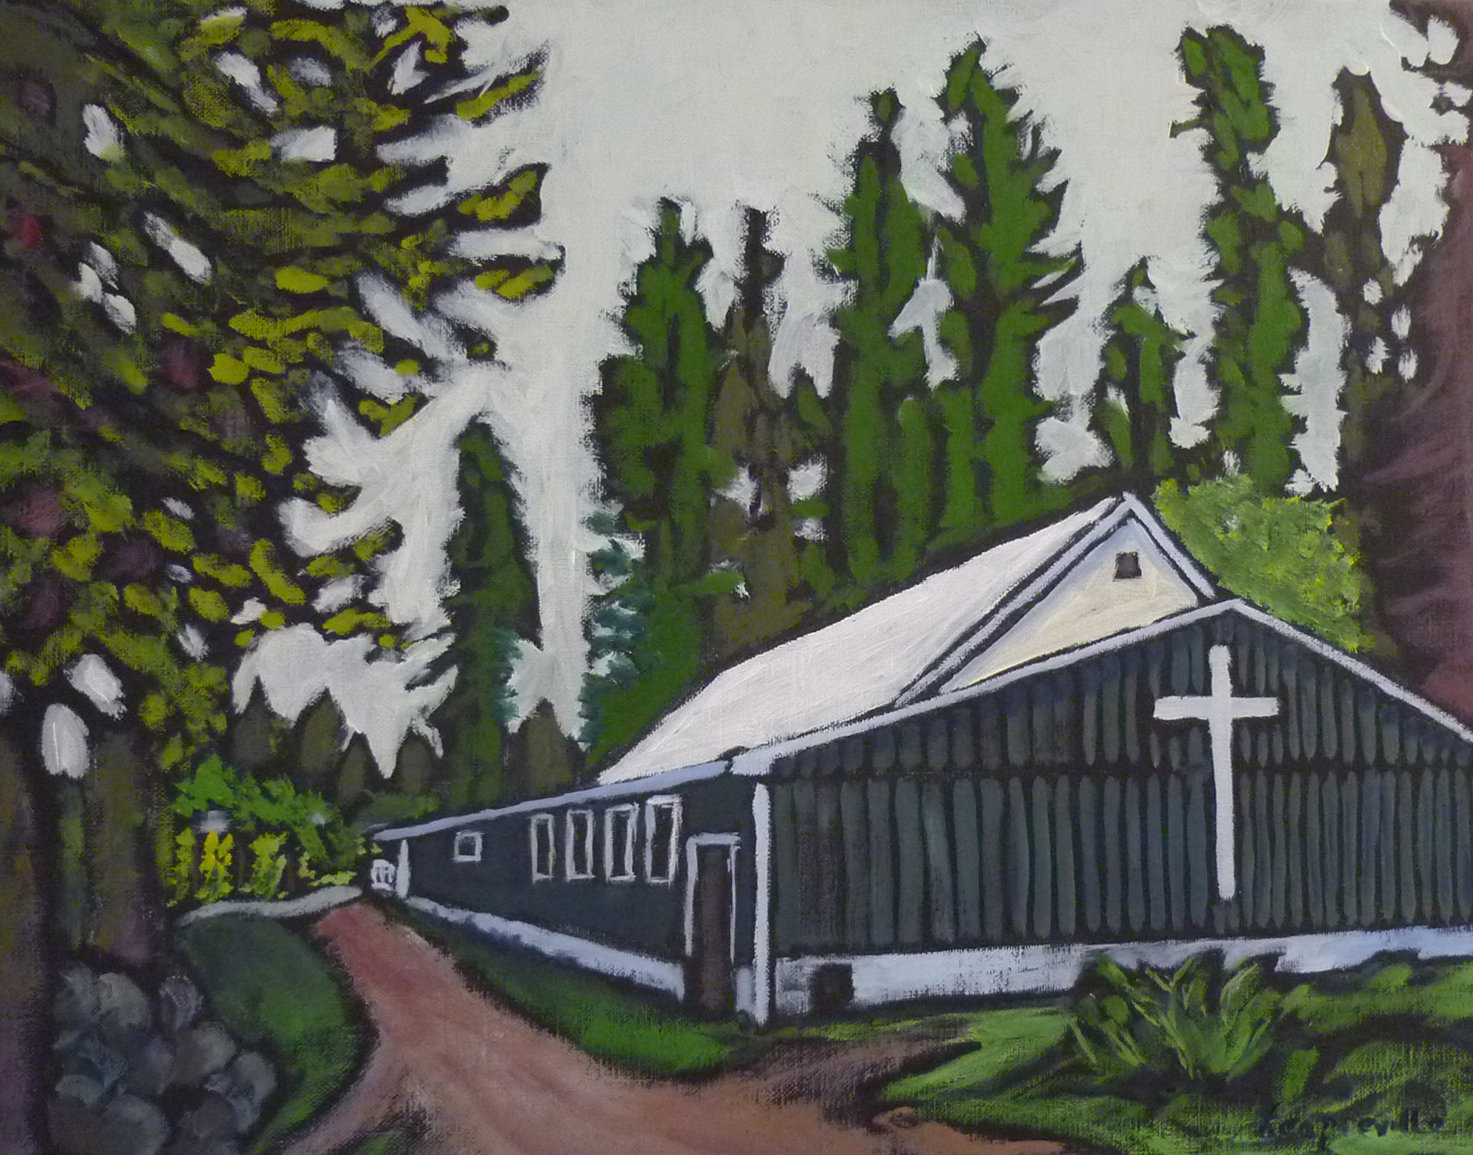 Covenant Church at the Junction, South Slocan, BC by Tea Preville